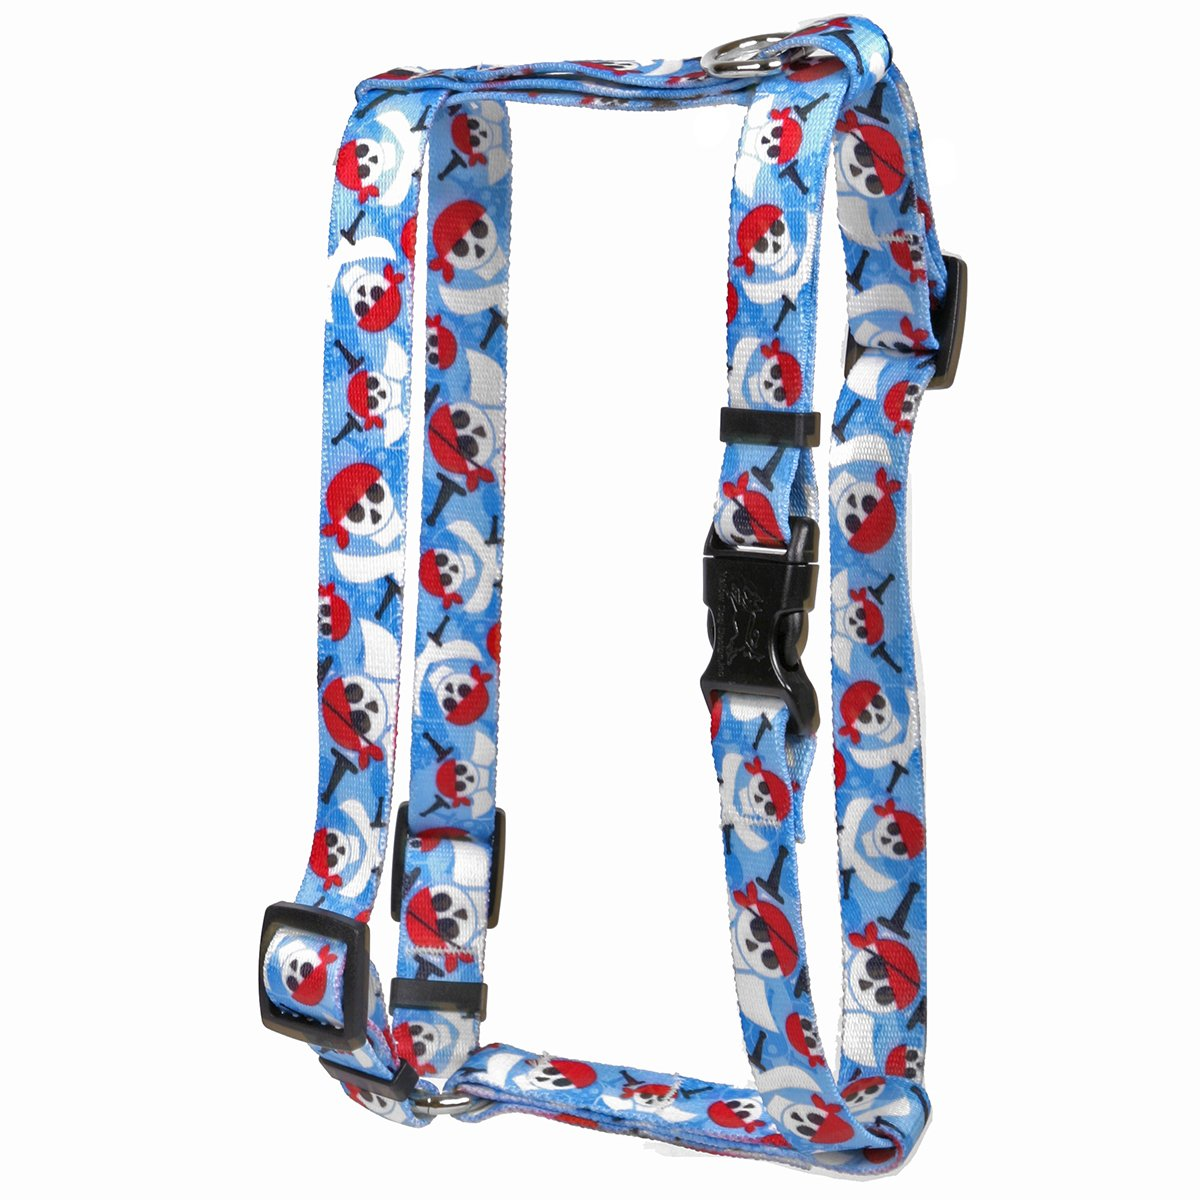 Yellow Dog Design Pirate Skulls Roman Style H Dog Harness, Large-1'' Wide and fits Chest of 20 to 28'' by Yellow Dog Design